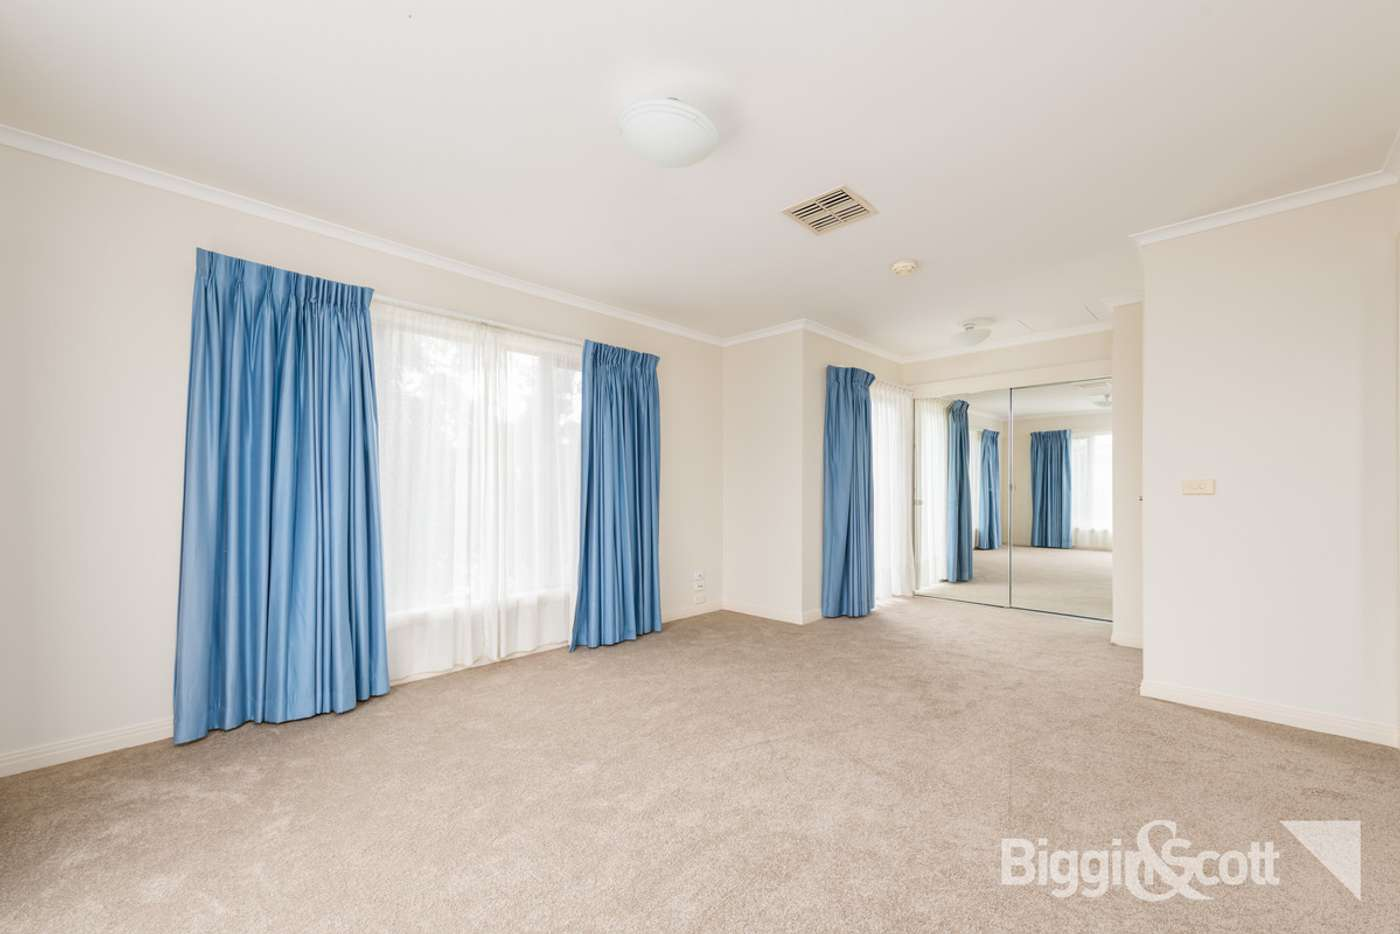 Sixth view of Homely house listing, 10 Swallow Street, Port Melbourne VIC 3207